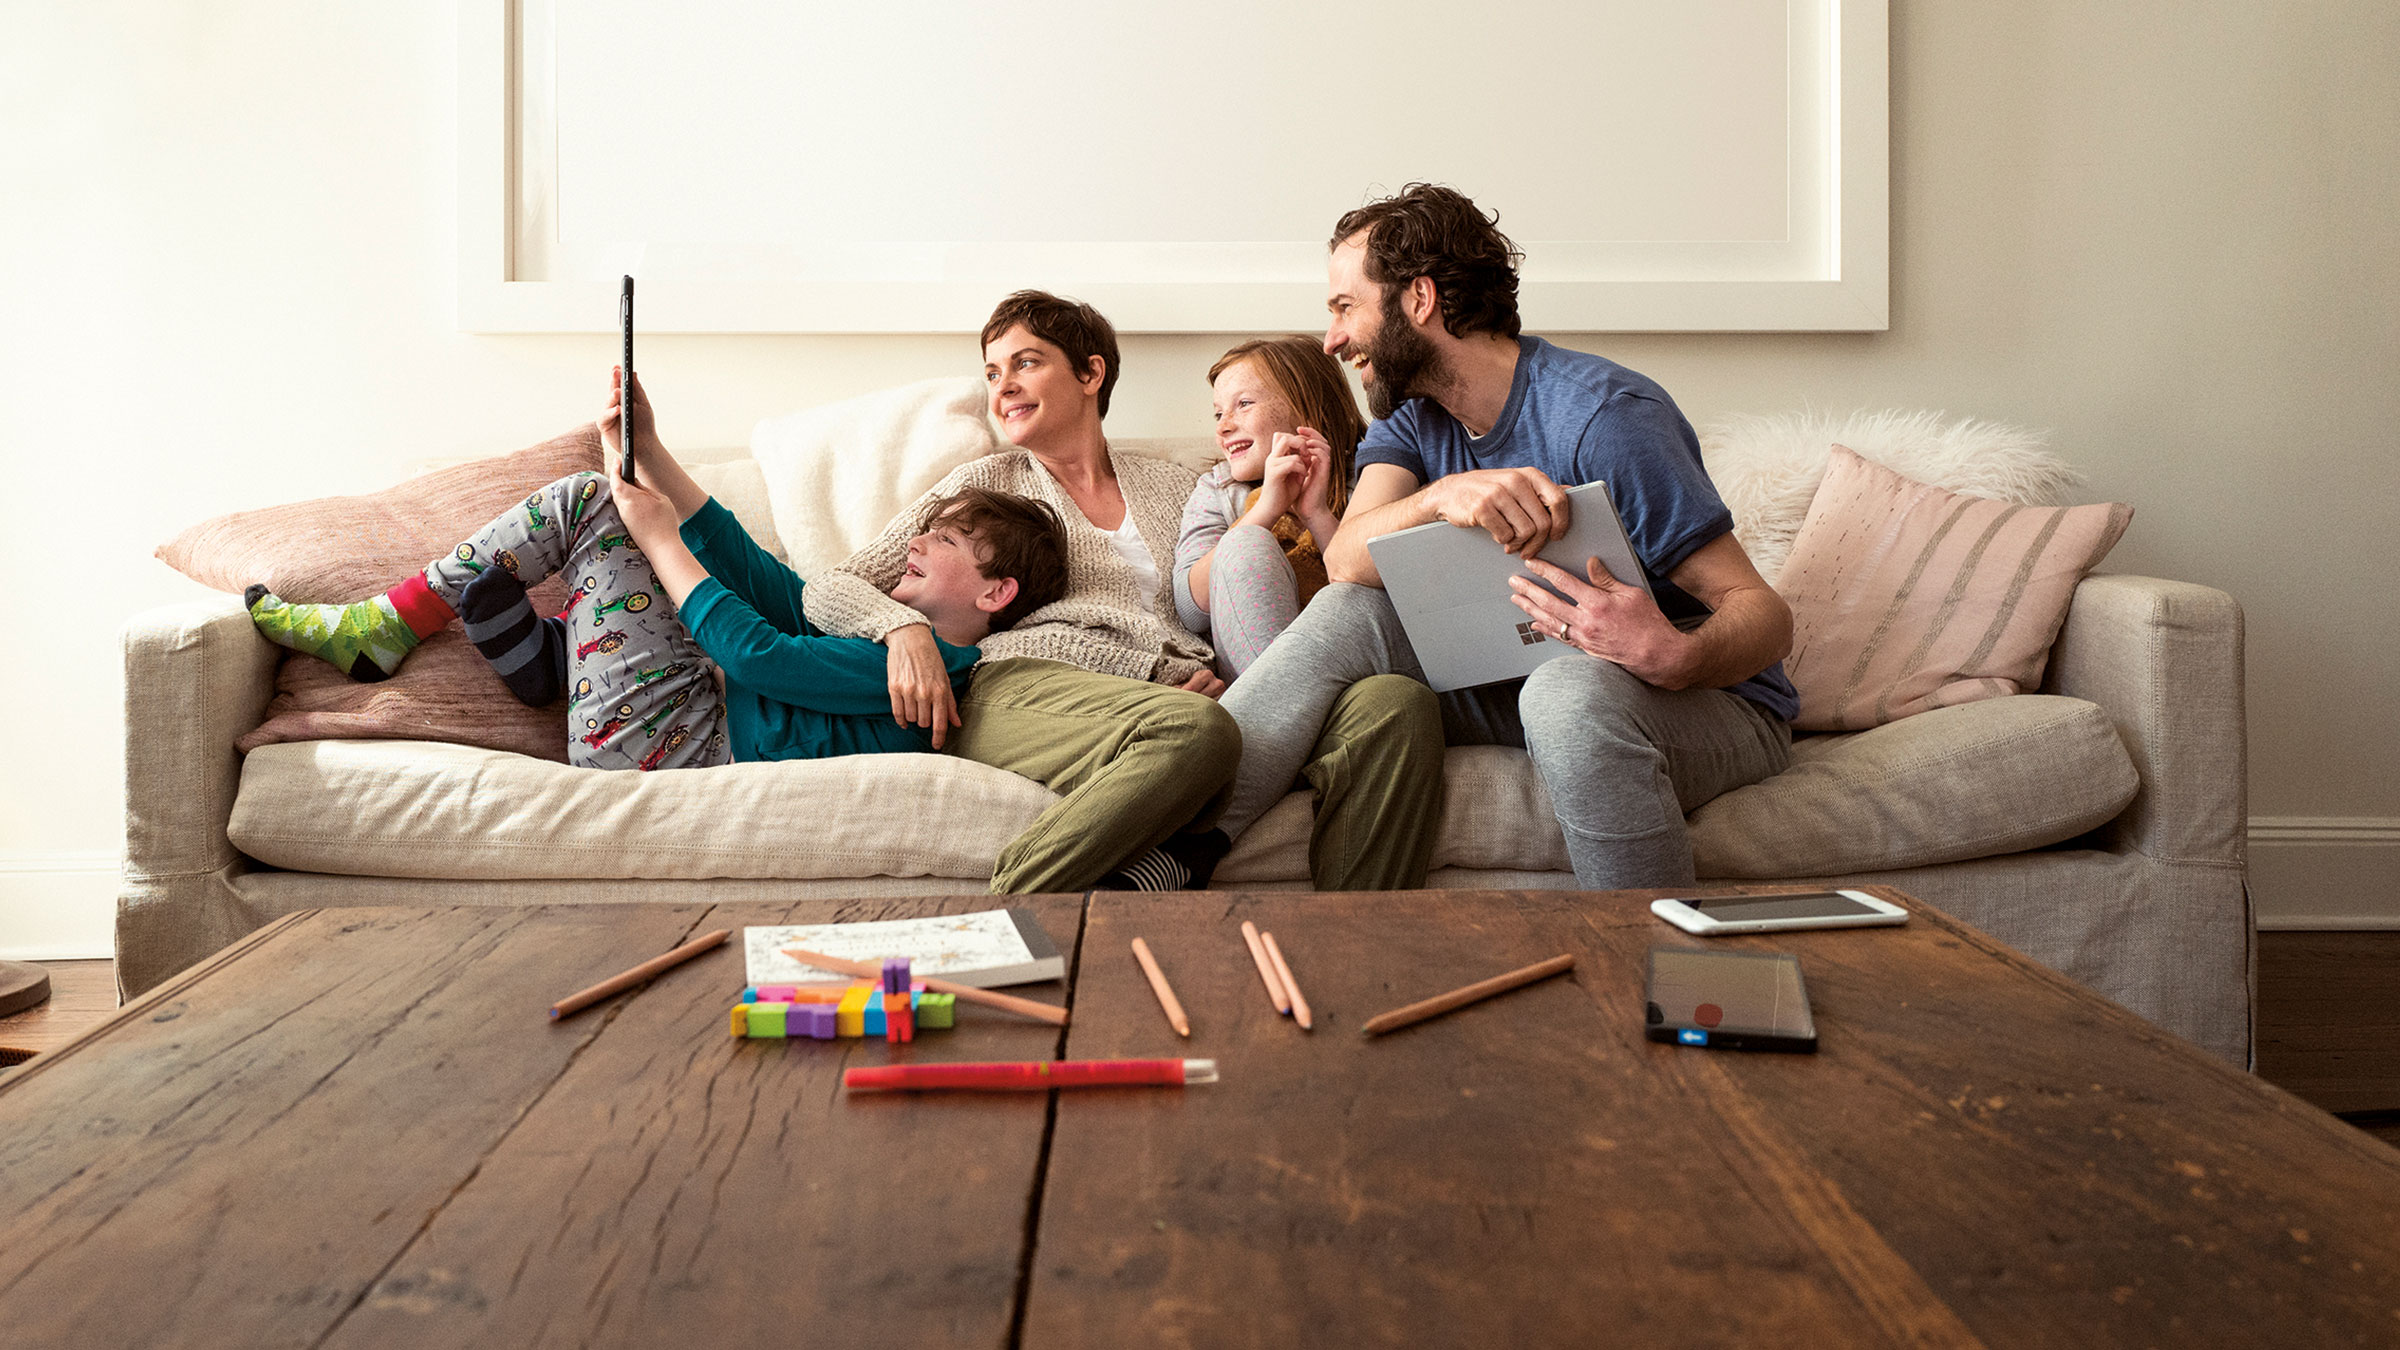 Family on a couch looking at a Microsoft Surface Pro device